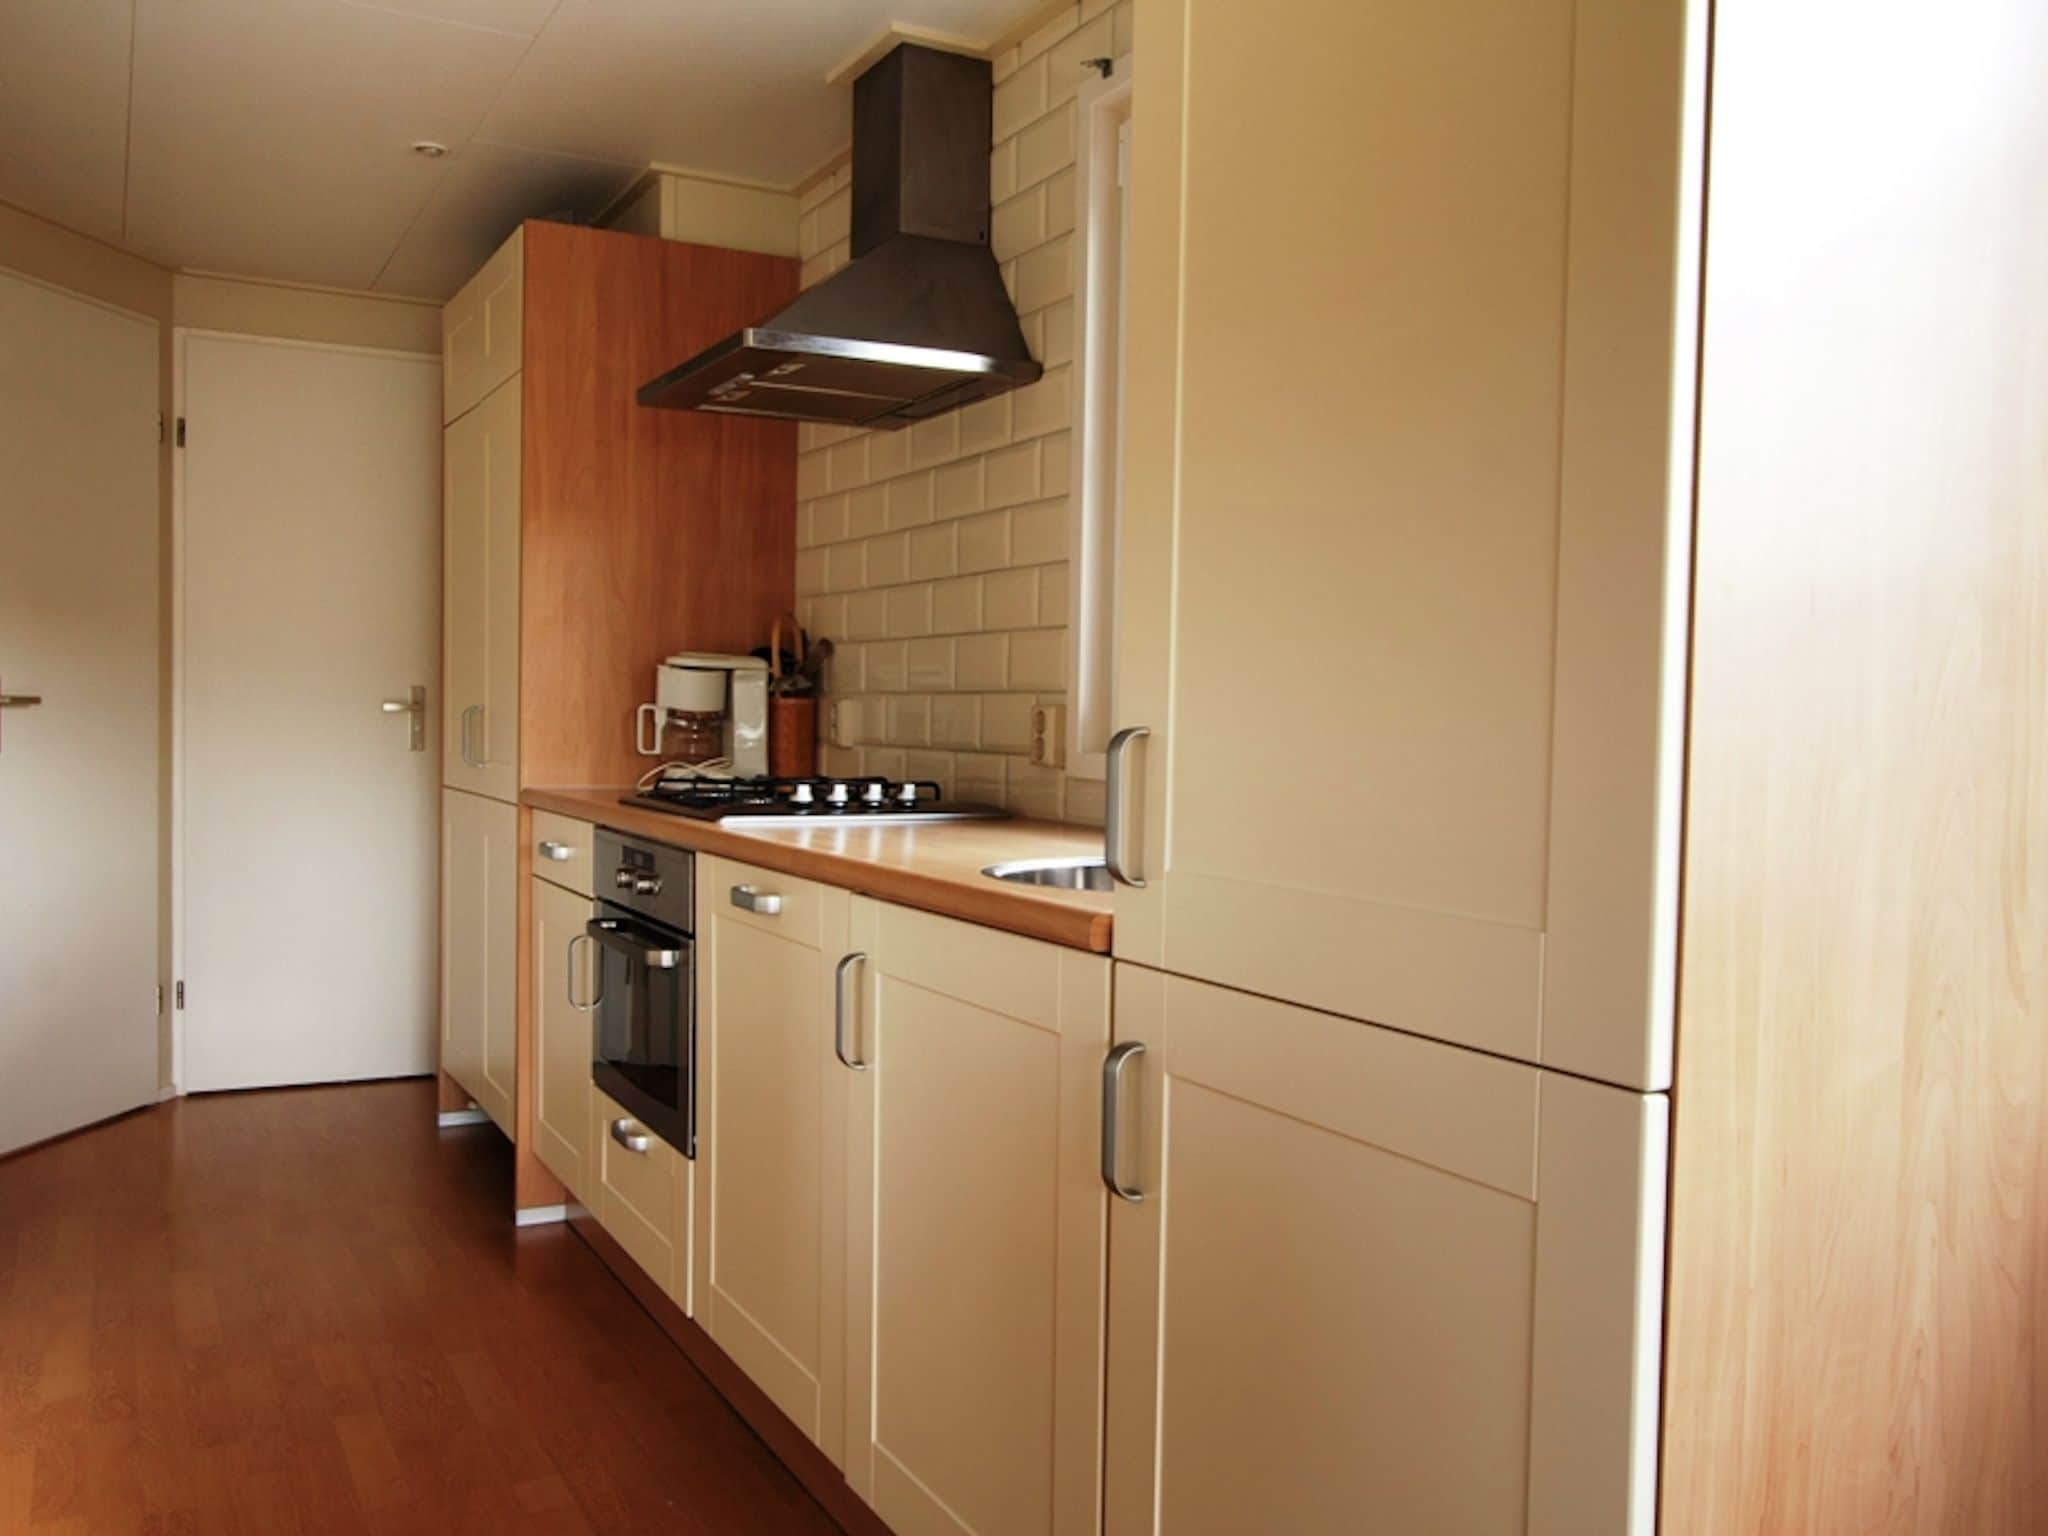 Holland | Overijssel | Holiday home Buitenplaats Holten - Korhoen 4-pers | all year | Kitchen